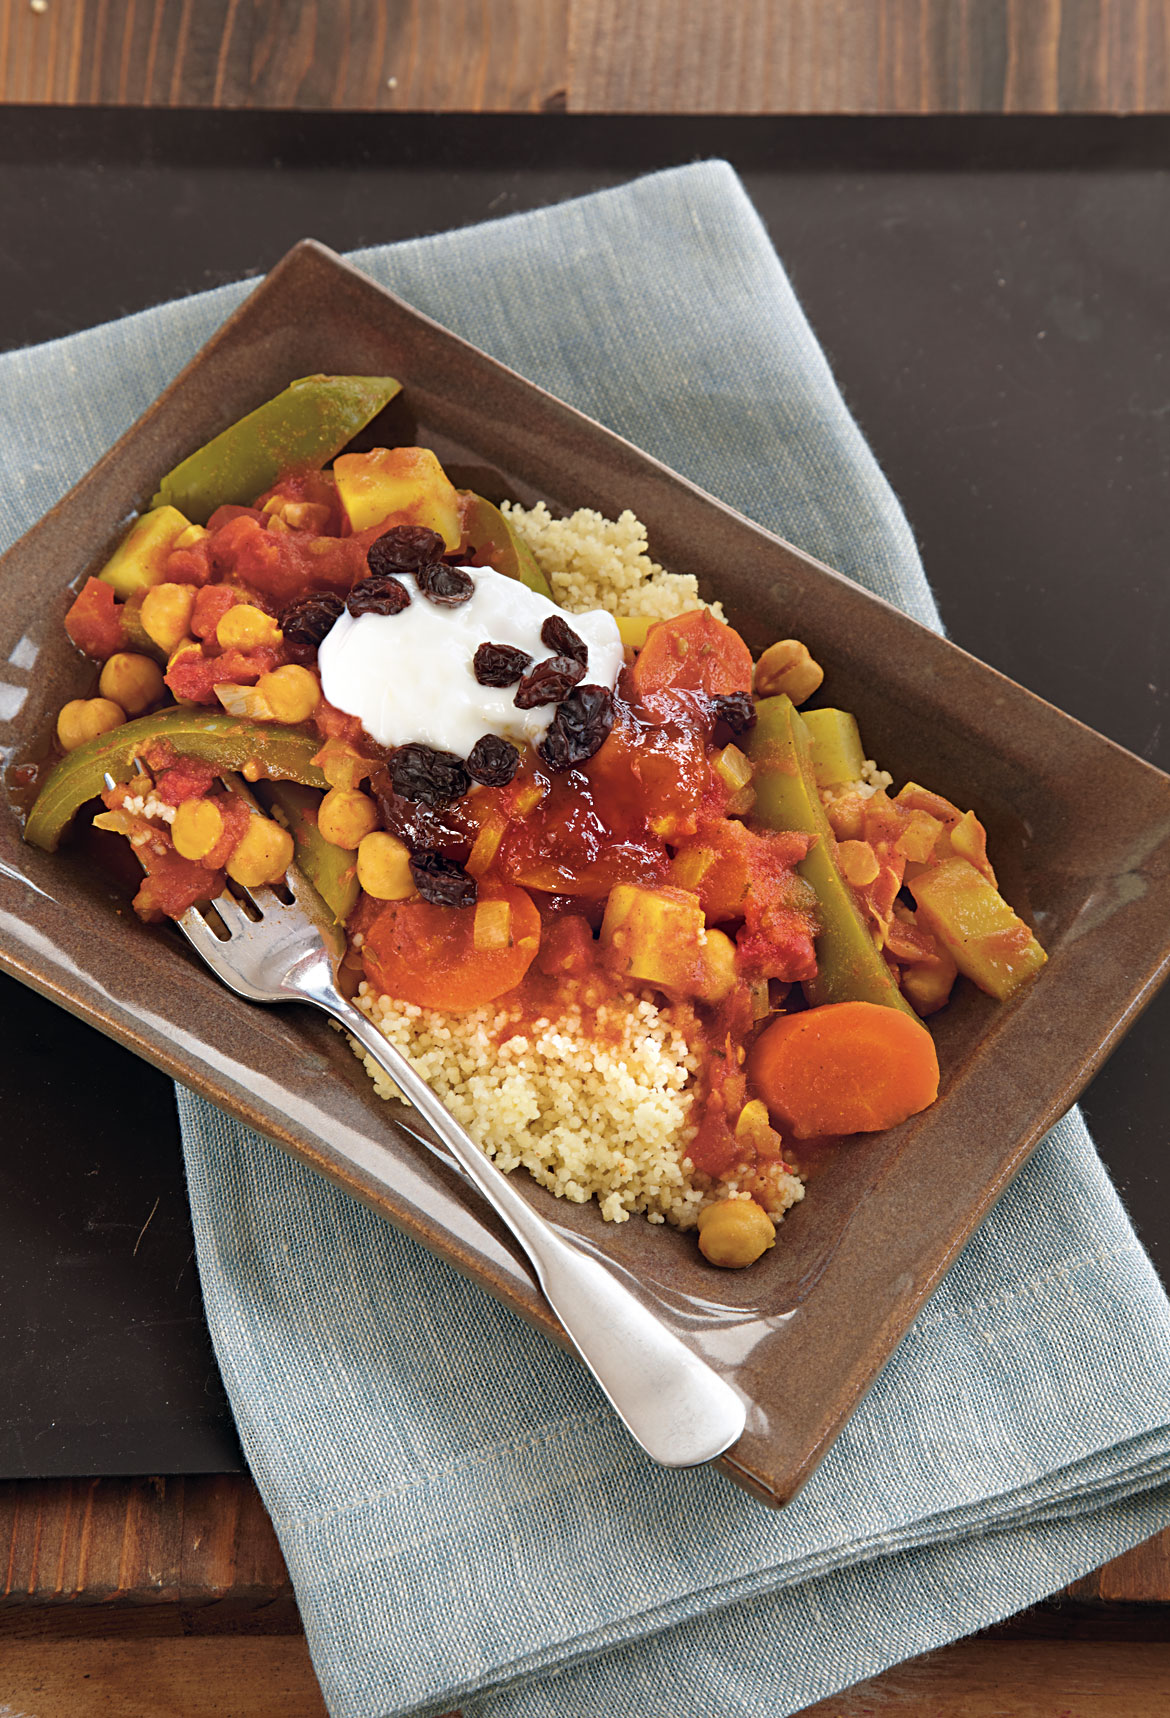 Curried Vegetables on Couscous